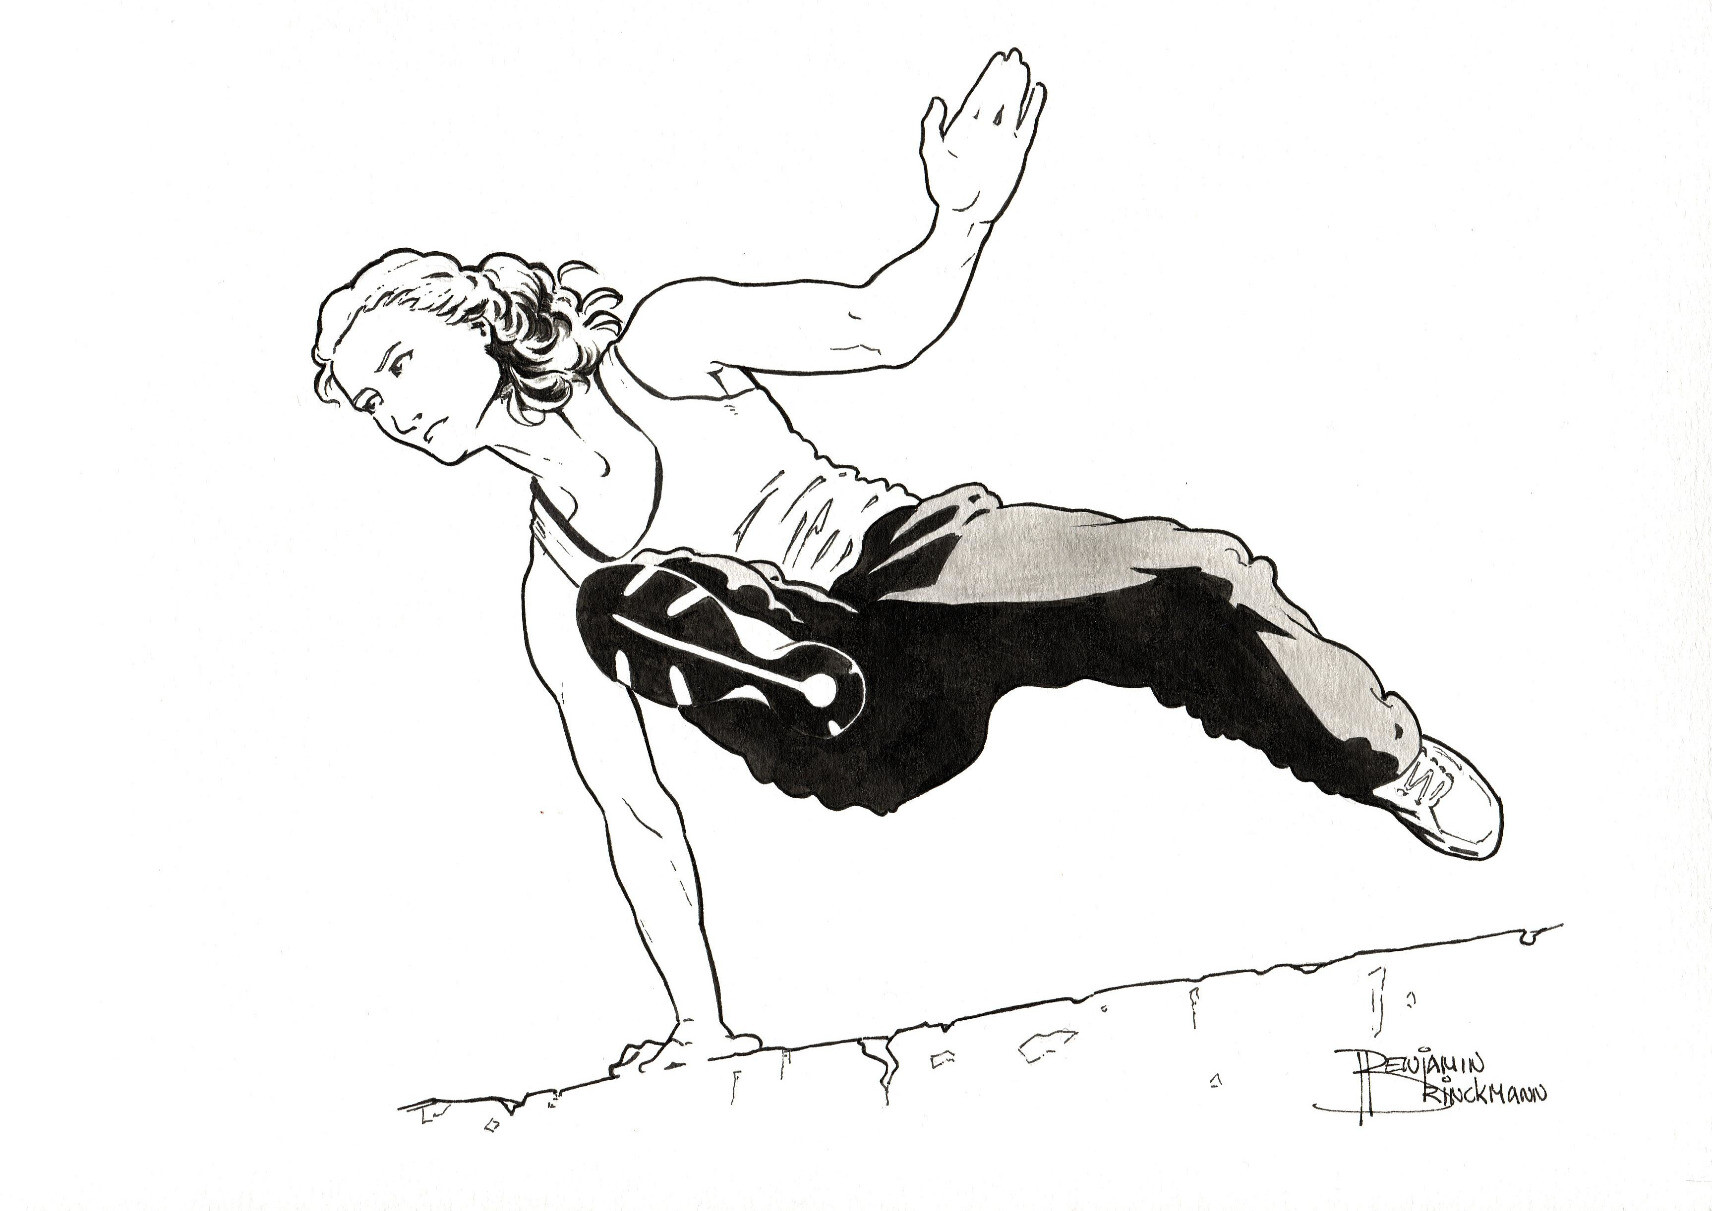 A young woman in baggy pants, wearing sport shoes, vaults over a weathered concrete obstacle.